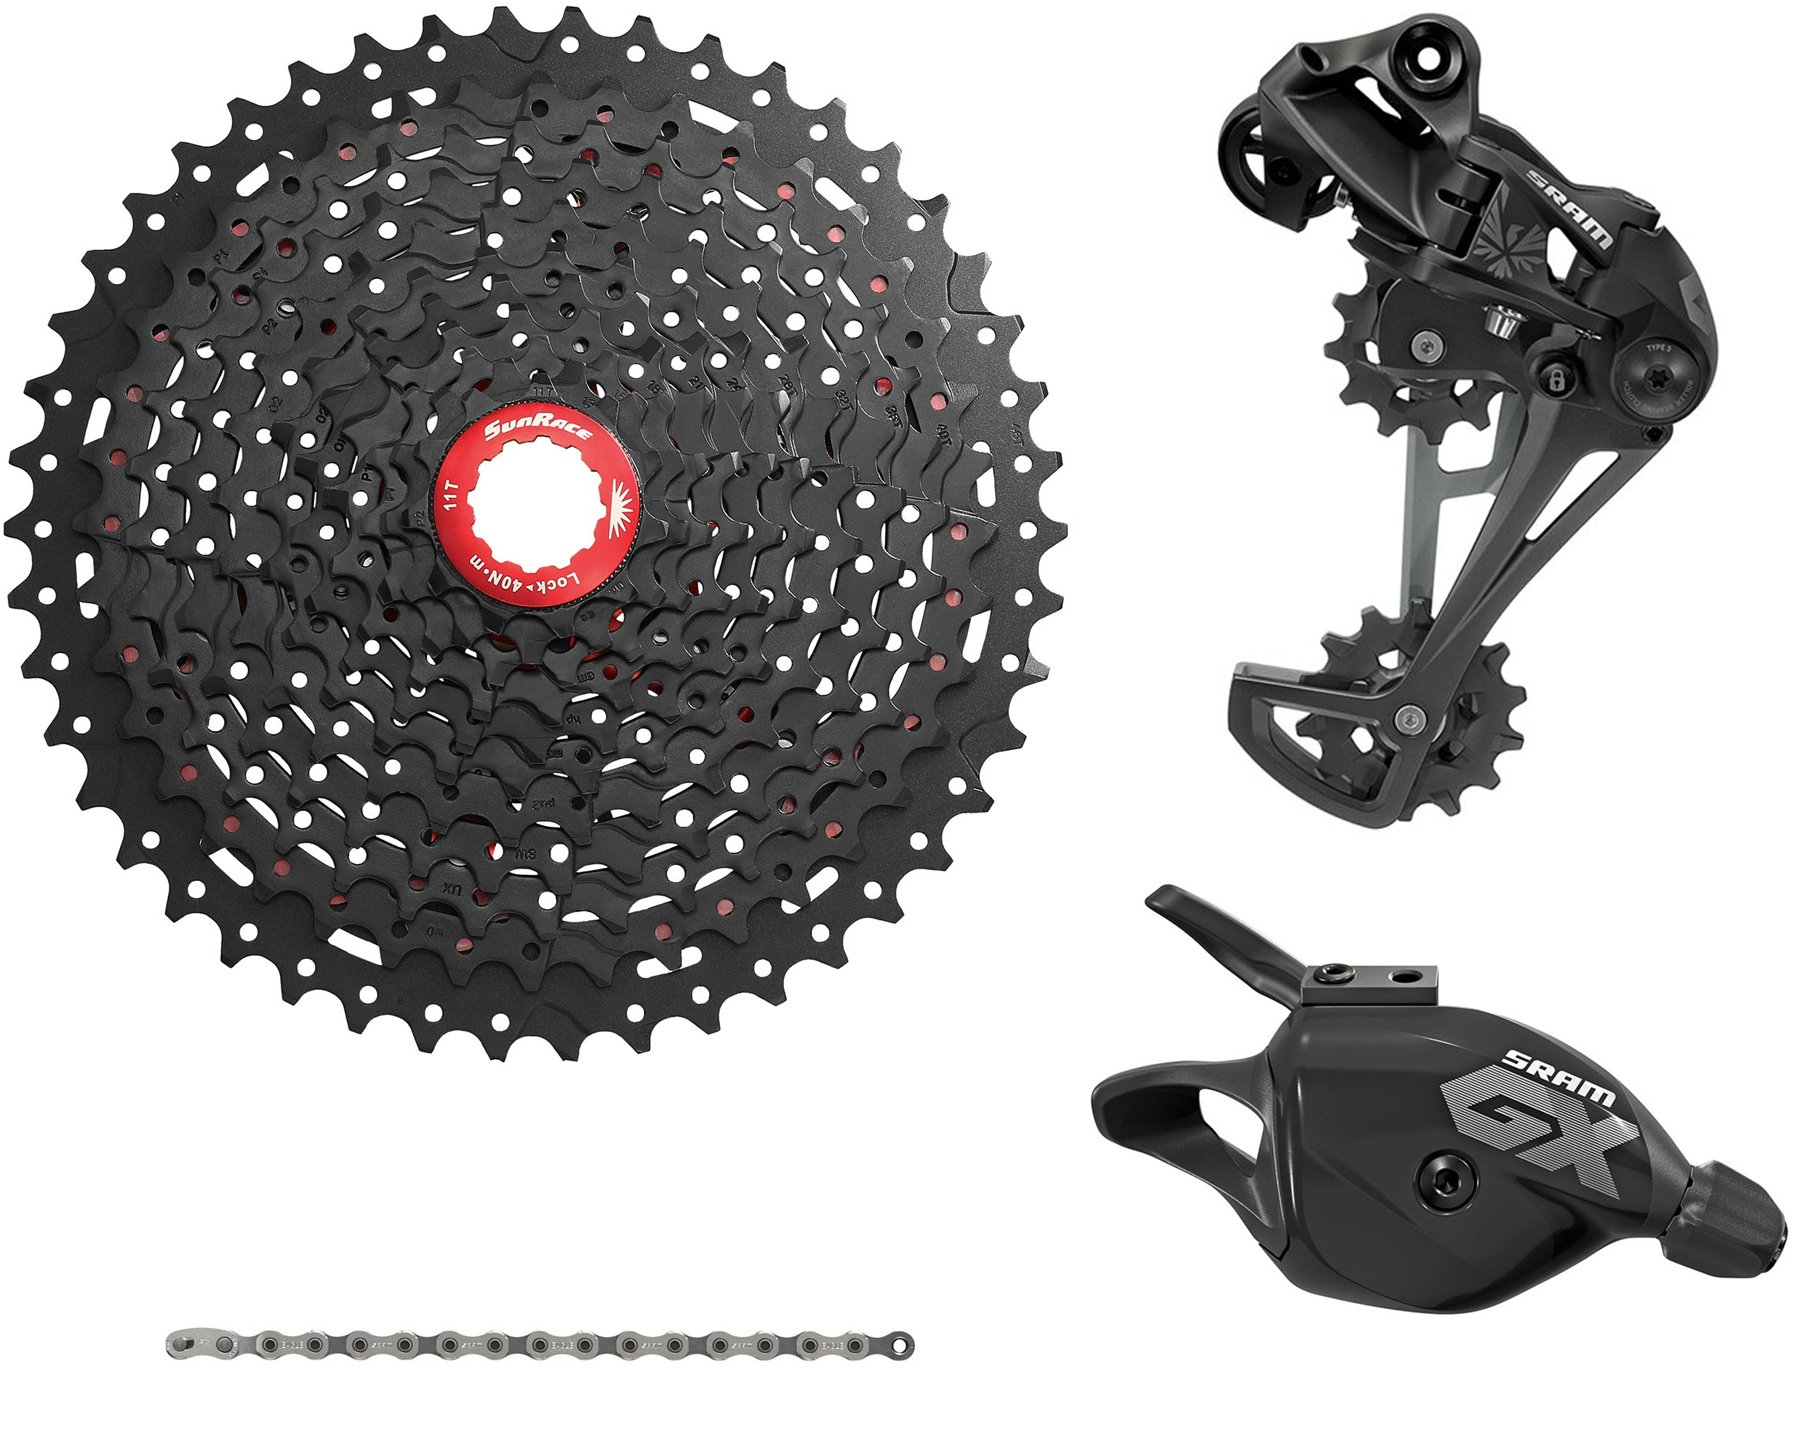 SRAM/Sunrace 12-Speed Gruppe til alm. body 11-50T Sort | Geargrupper